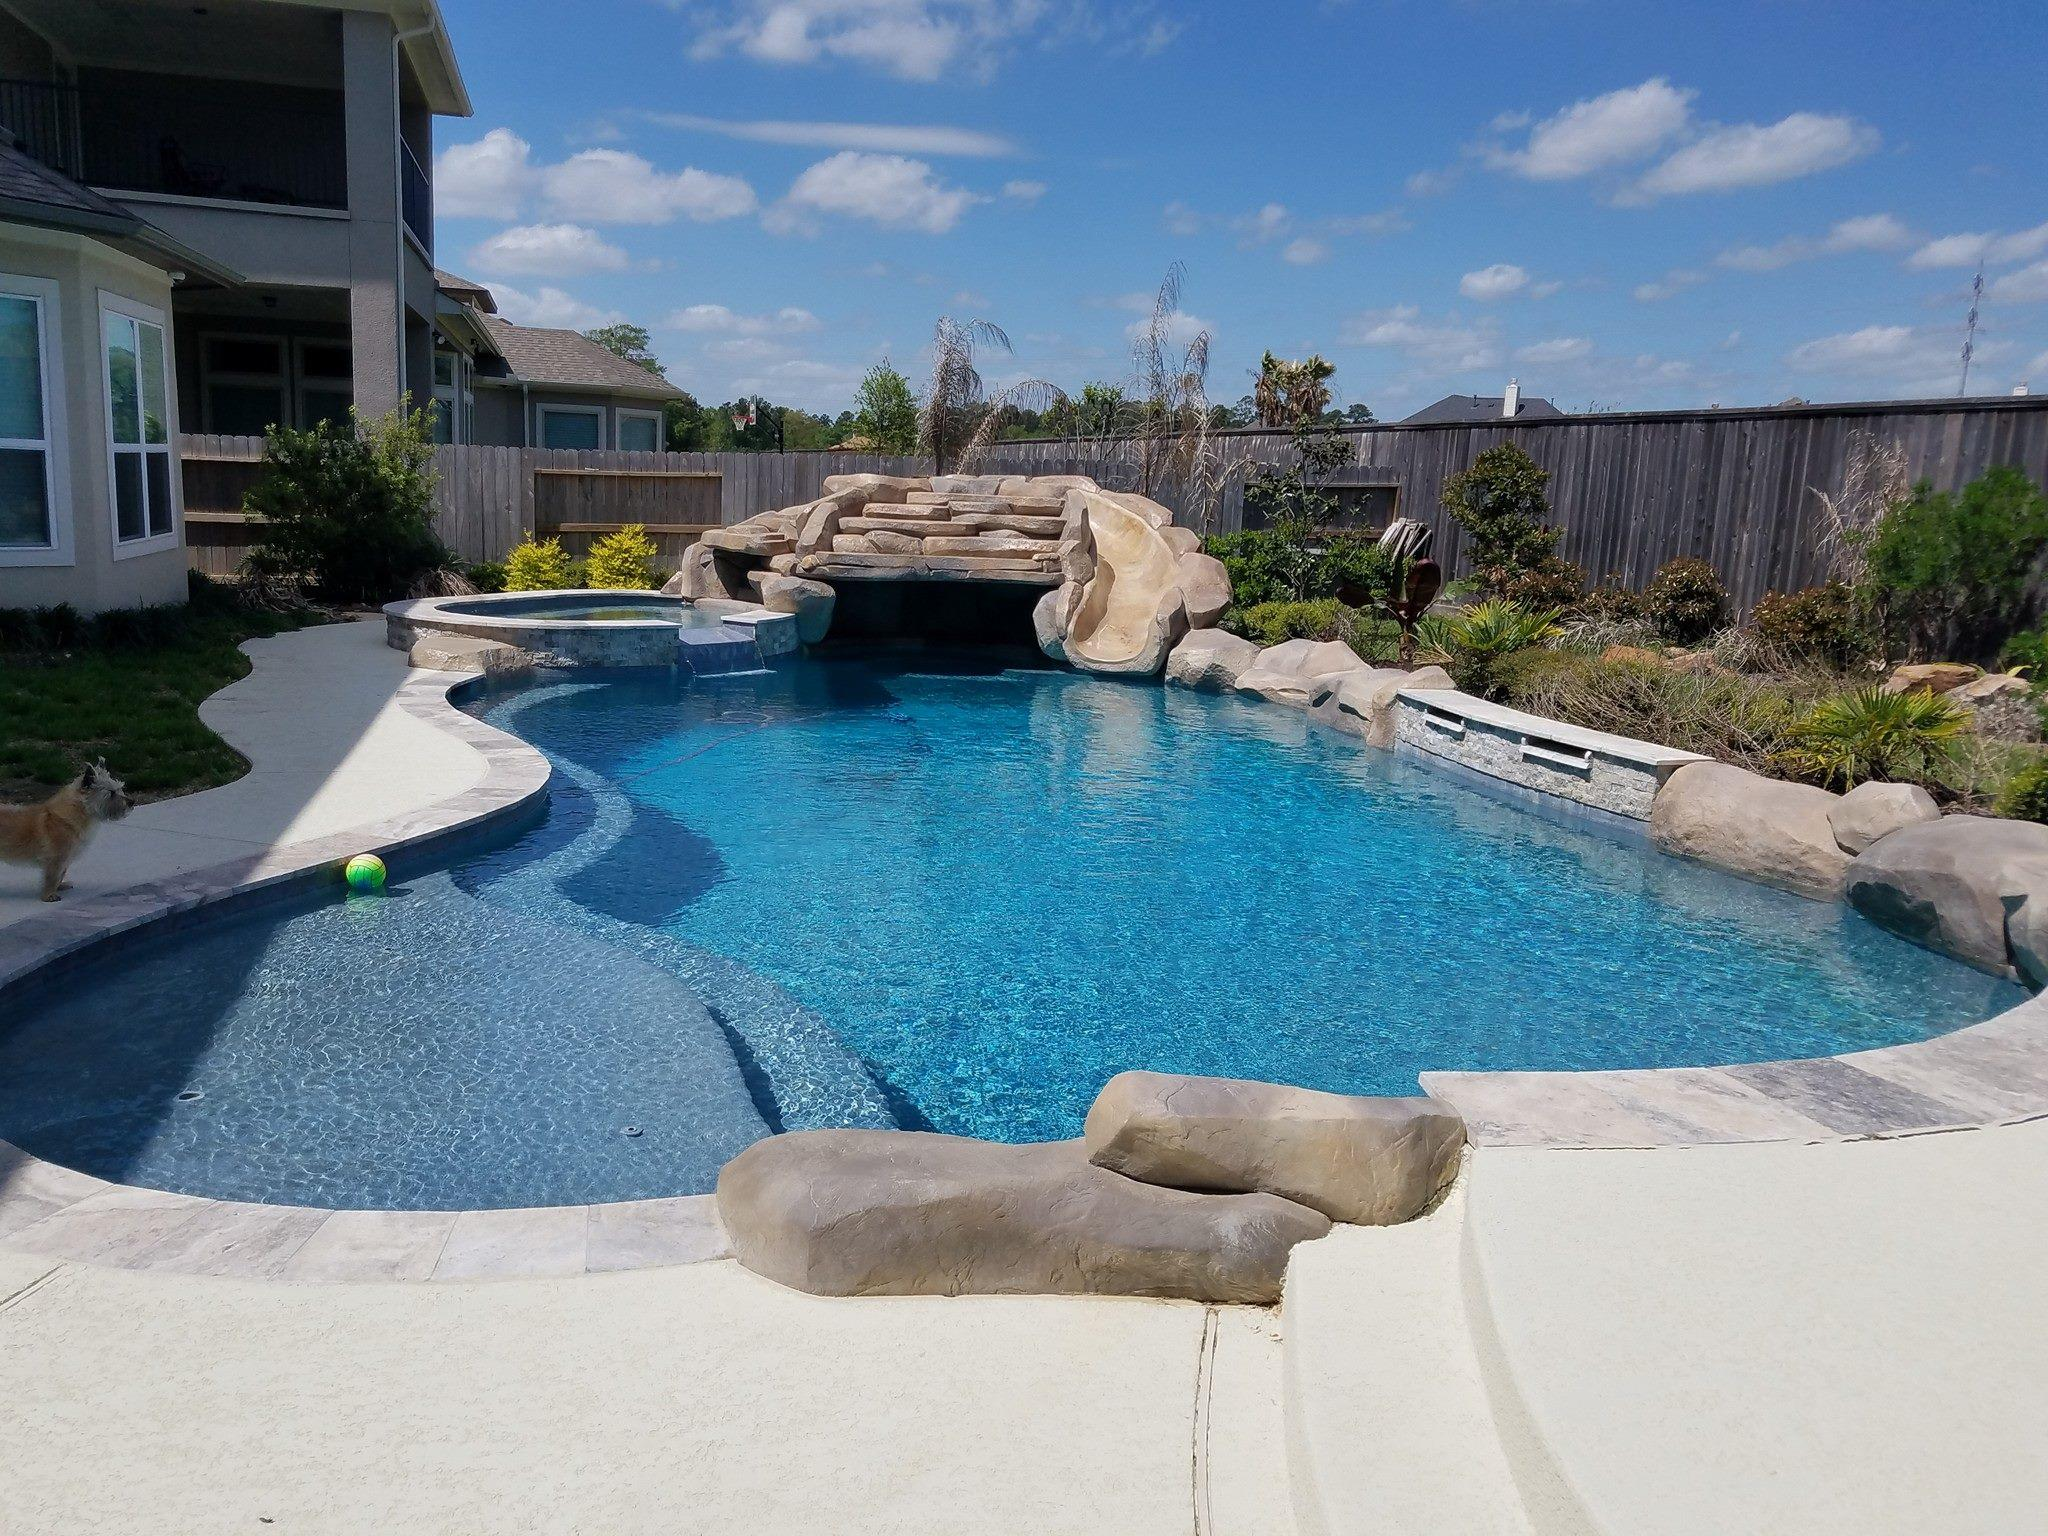 Precision Pools & Spas image 89